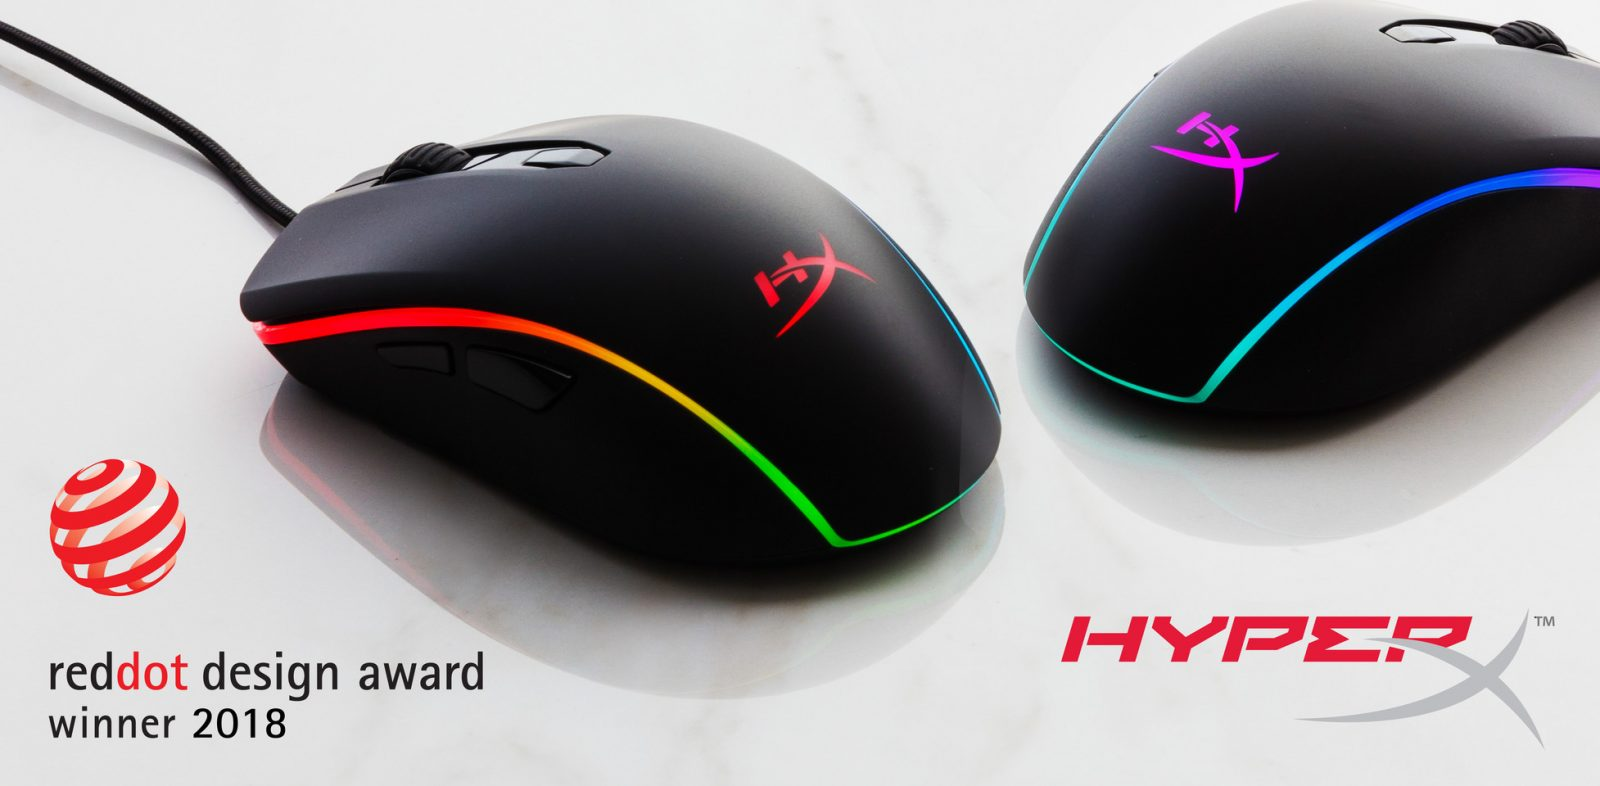 Hyperx Announces New Pulsefire Surge Gaming Mouse With Rgb